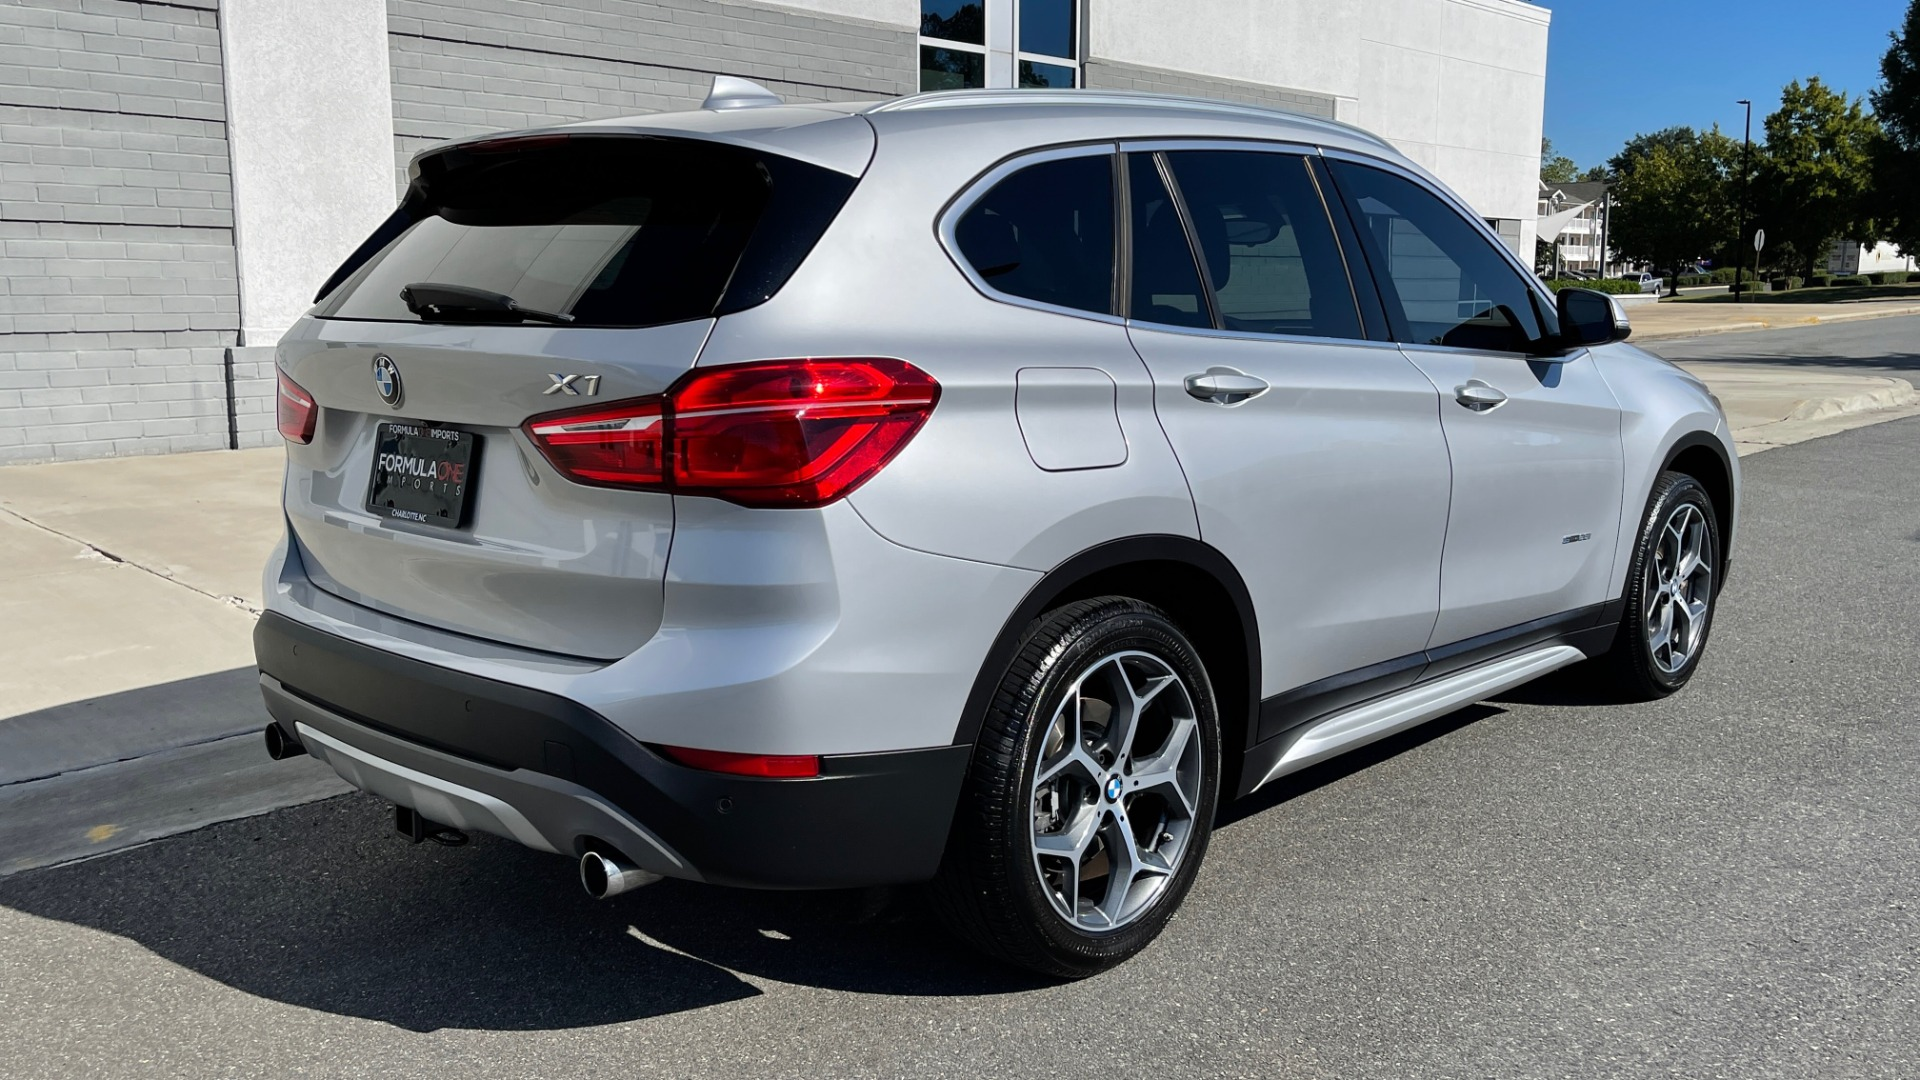 Used 2017 BMW X1 SDRIVE28I 2.0L / 8-SPD AUTO / DRIVER ASST / PANO-ROOF / REARVIEW for sale $26,995 at Formula Imports in Charlotte NC 28227 2